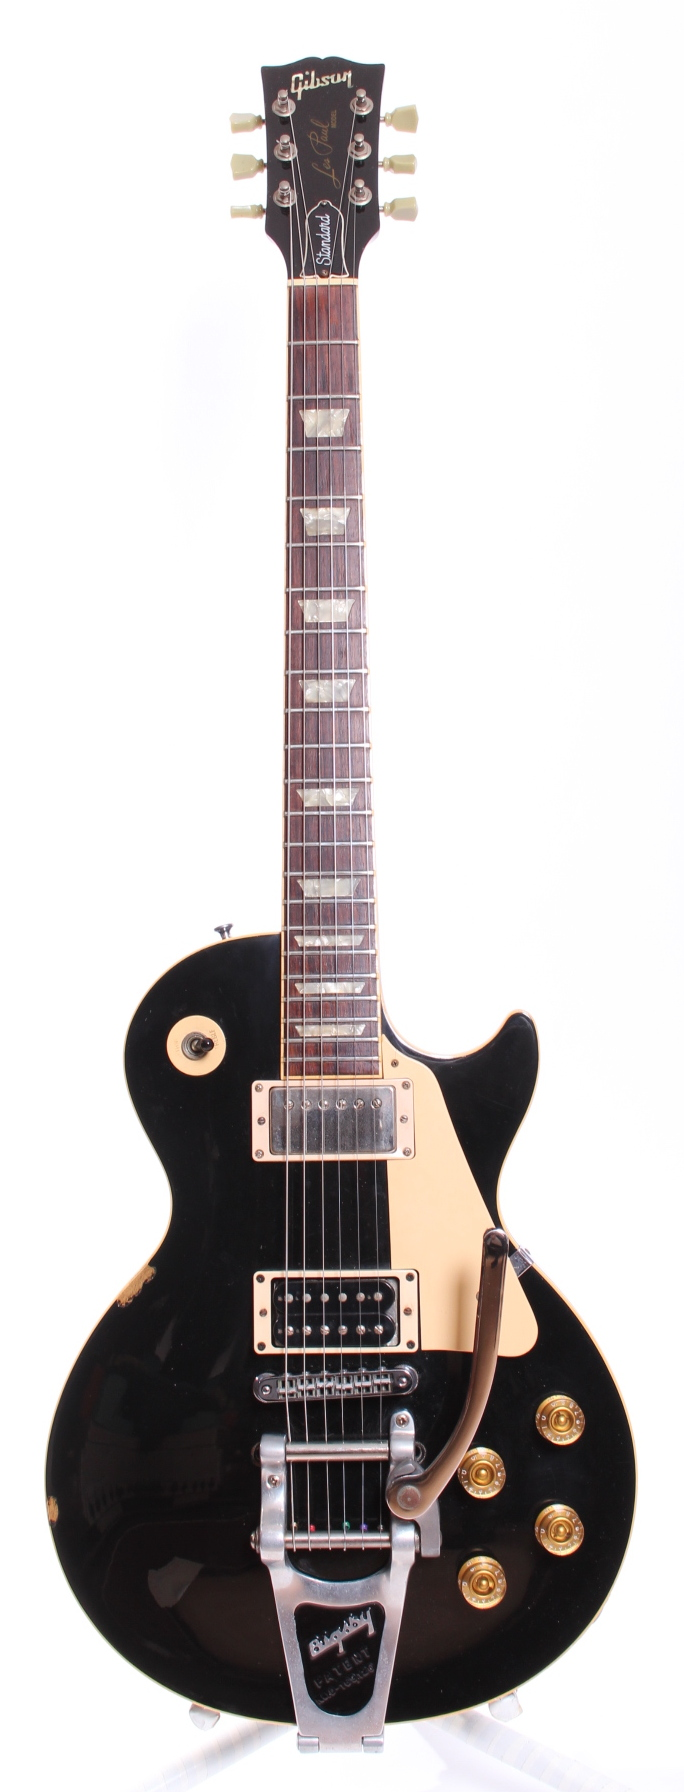 gibson les paul standard 1995 ebony guitar for sale yeahman 39 s guitars. Black Bedroom Furniture Sets. Home Design Ideas